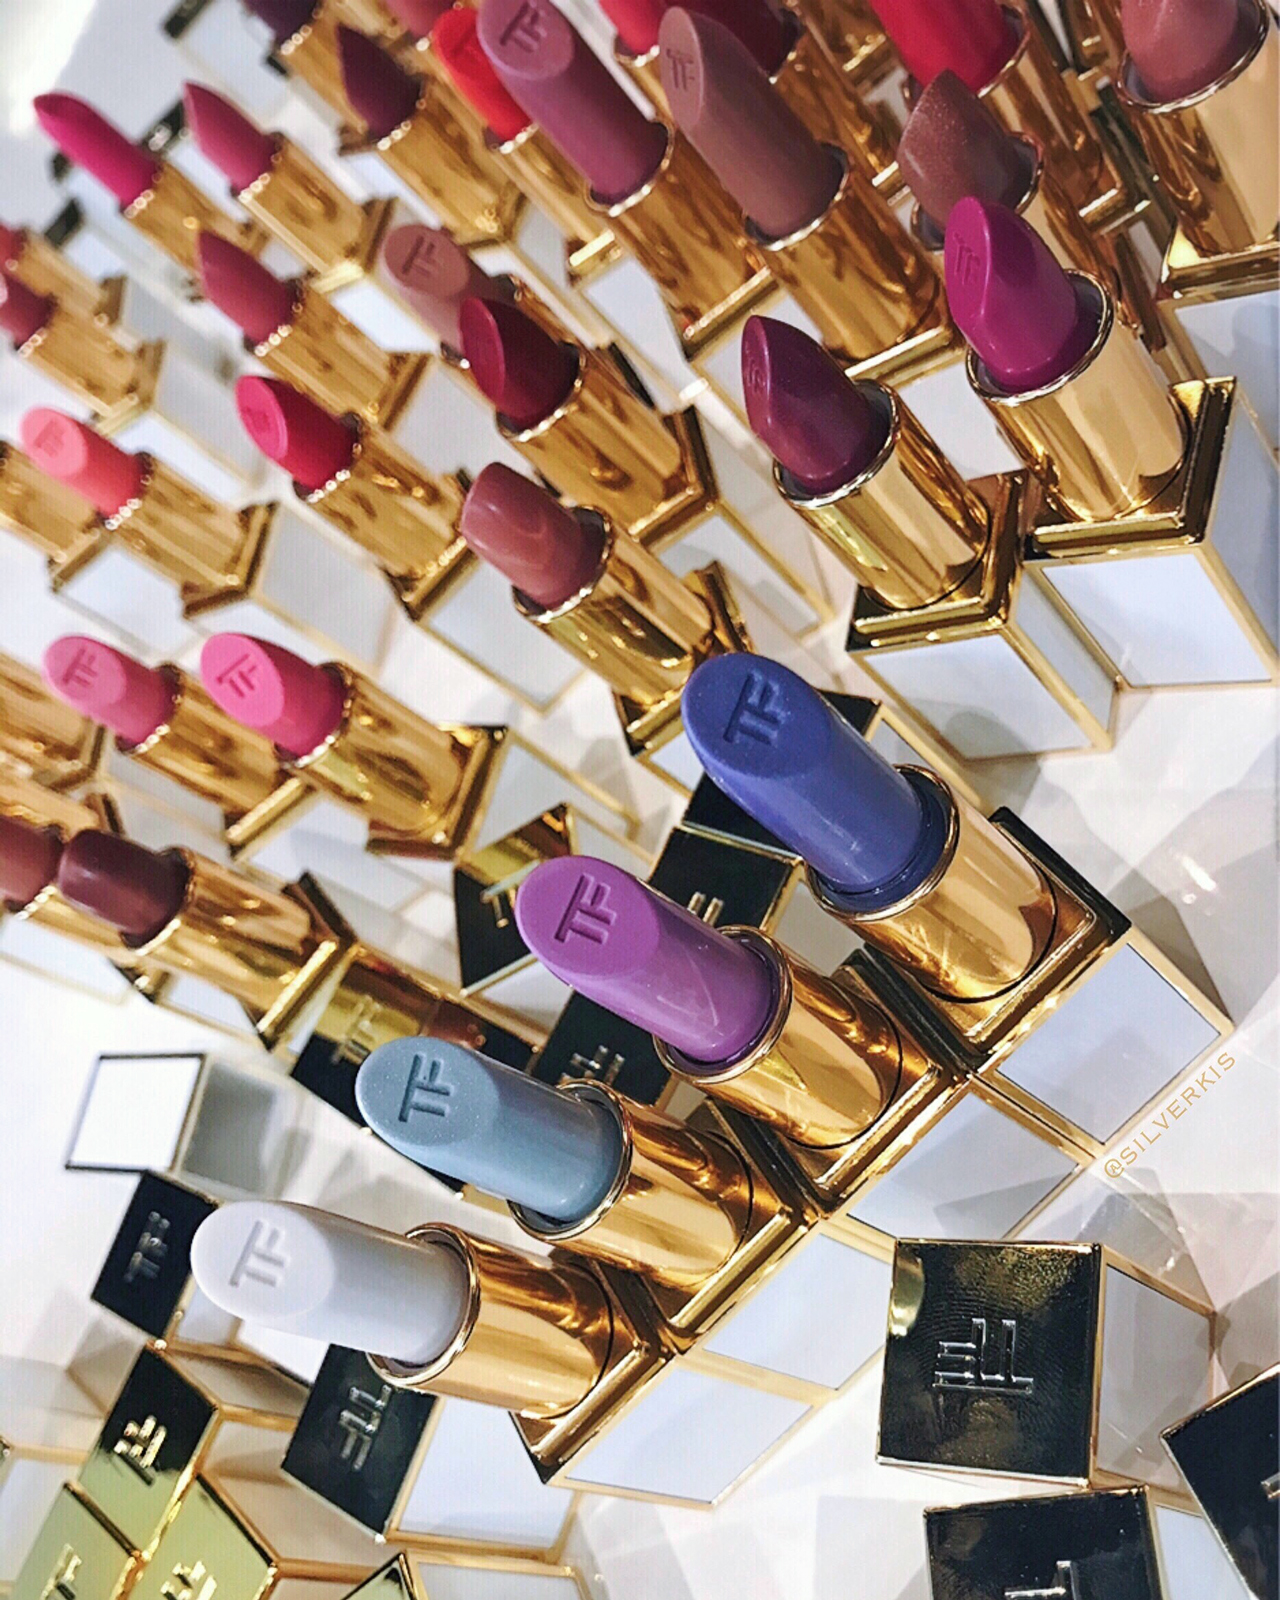 Tom Ford Boys and Girls Lip Colors